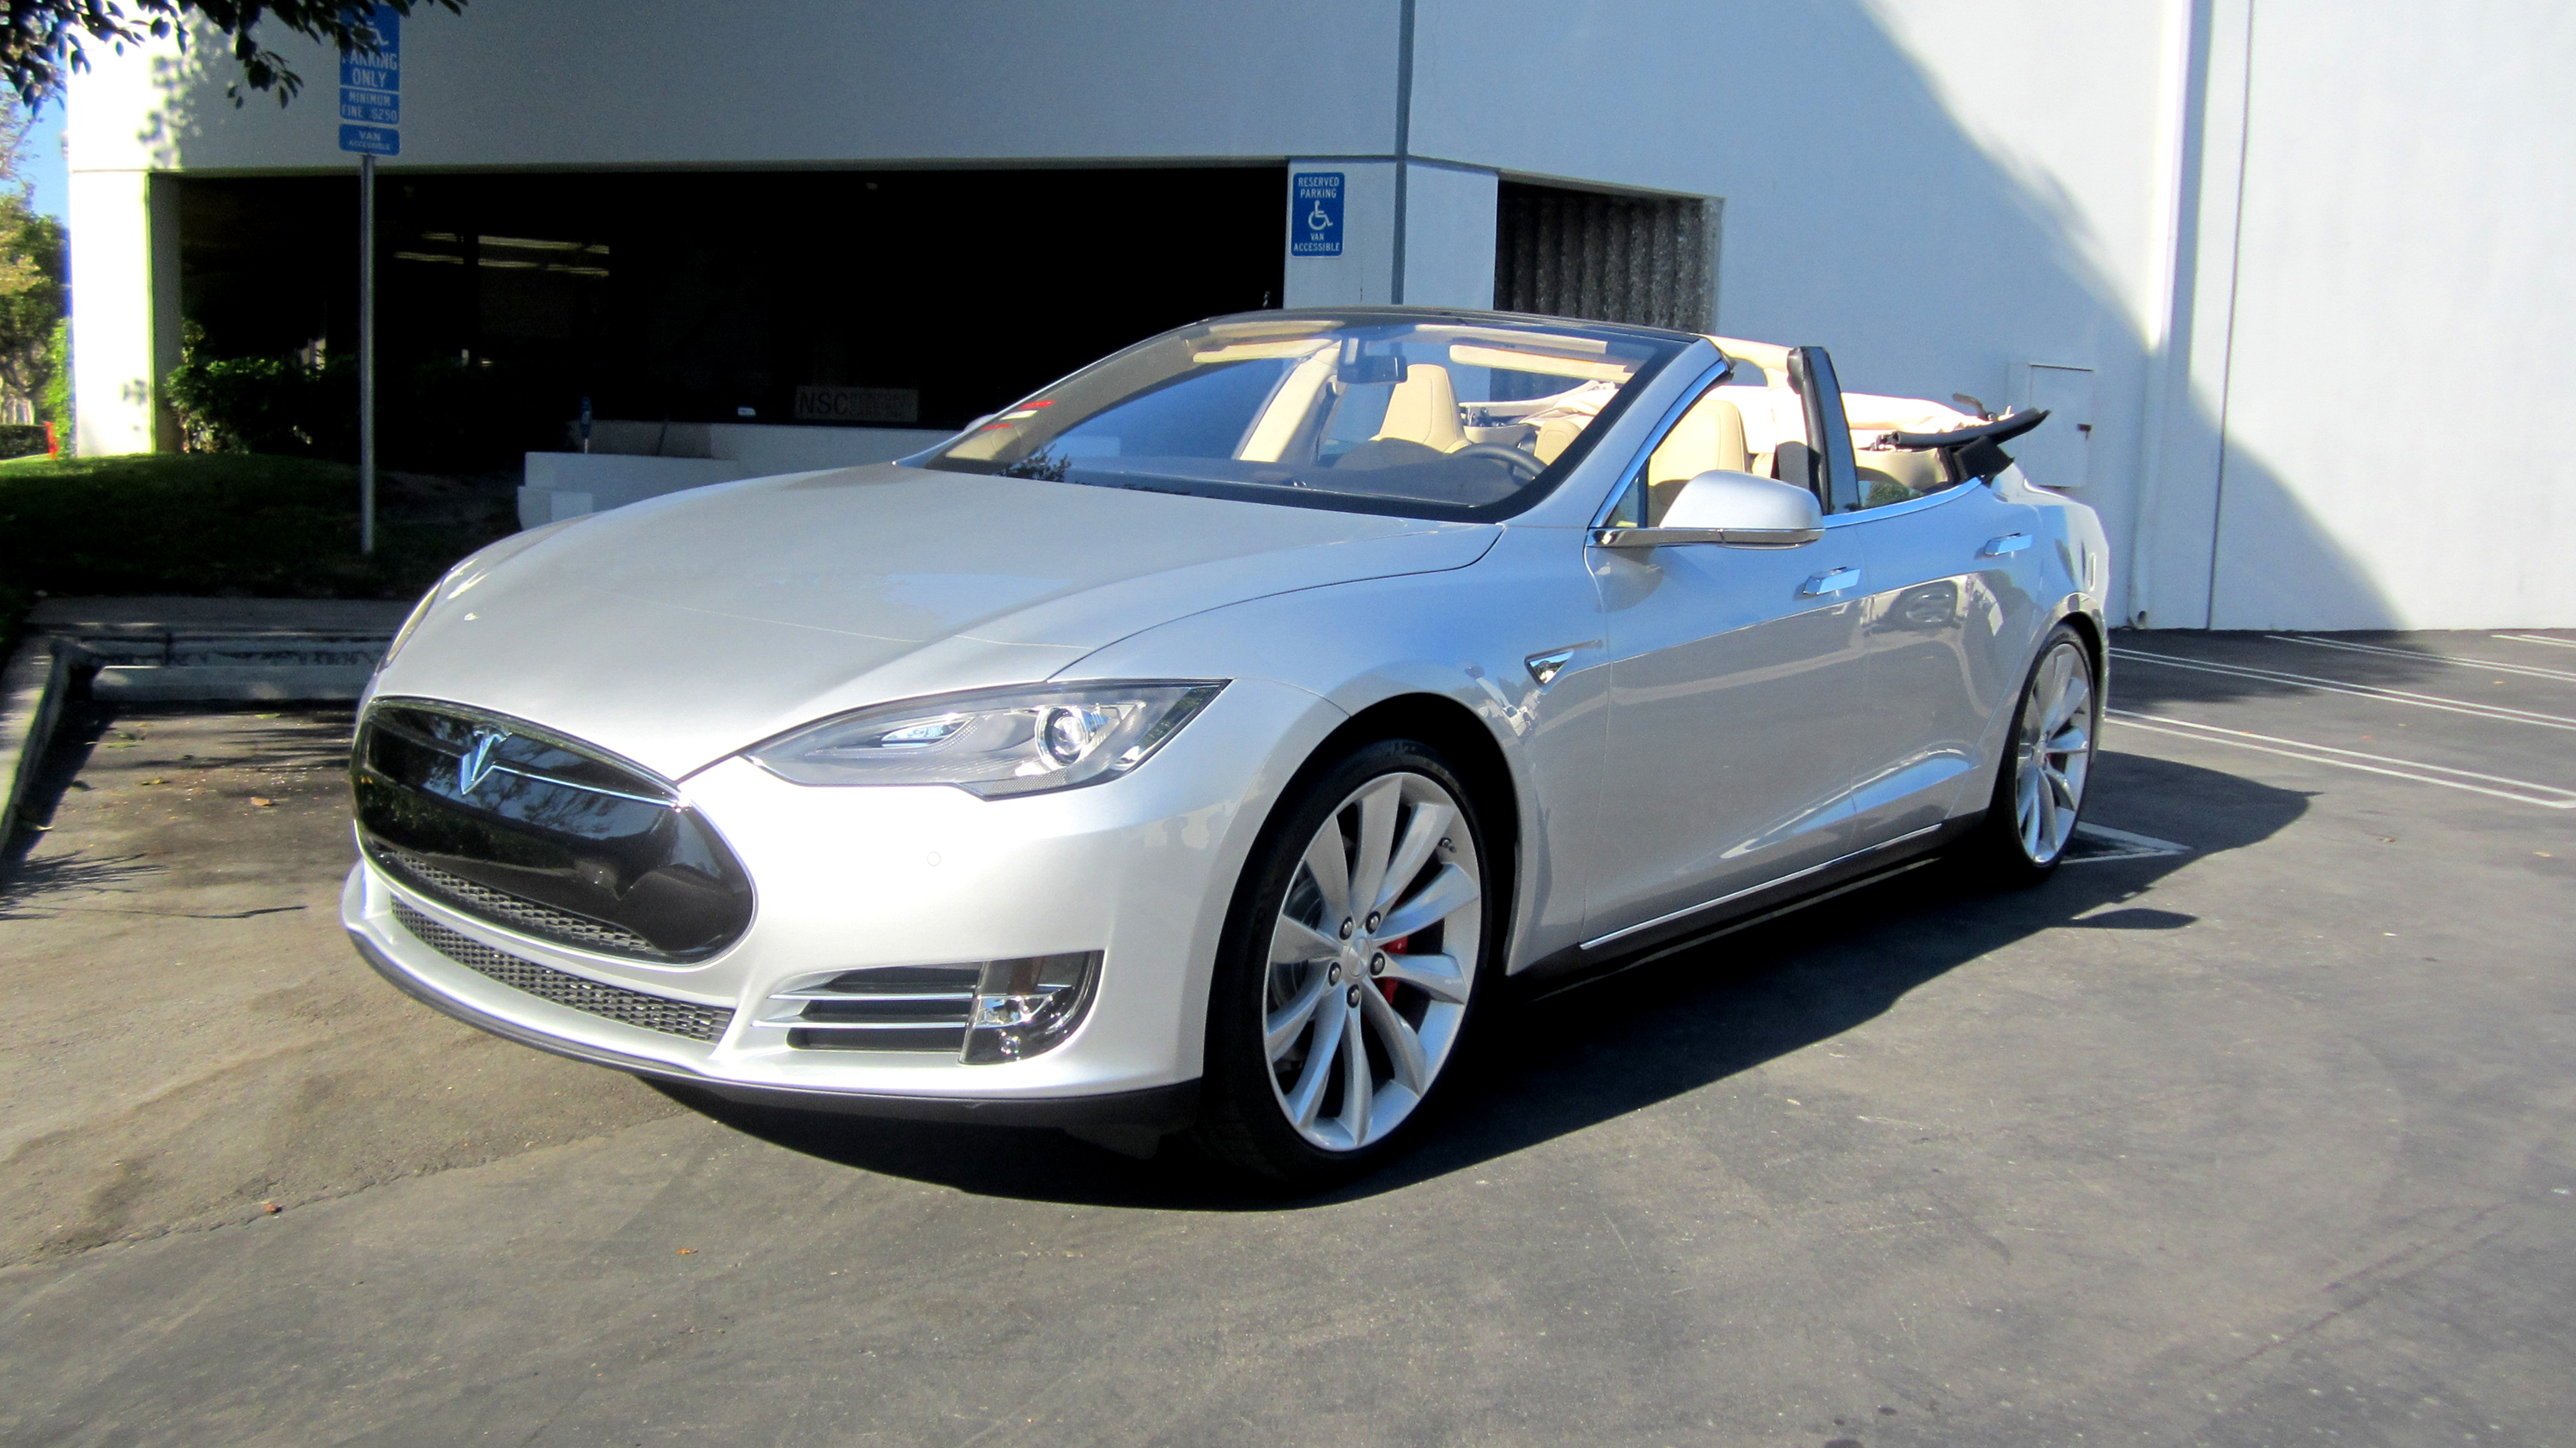 Tesla Model S Convertible Is Real, And It\'s On eBay: Video